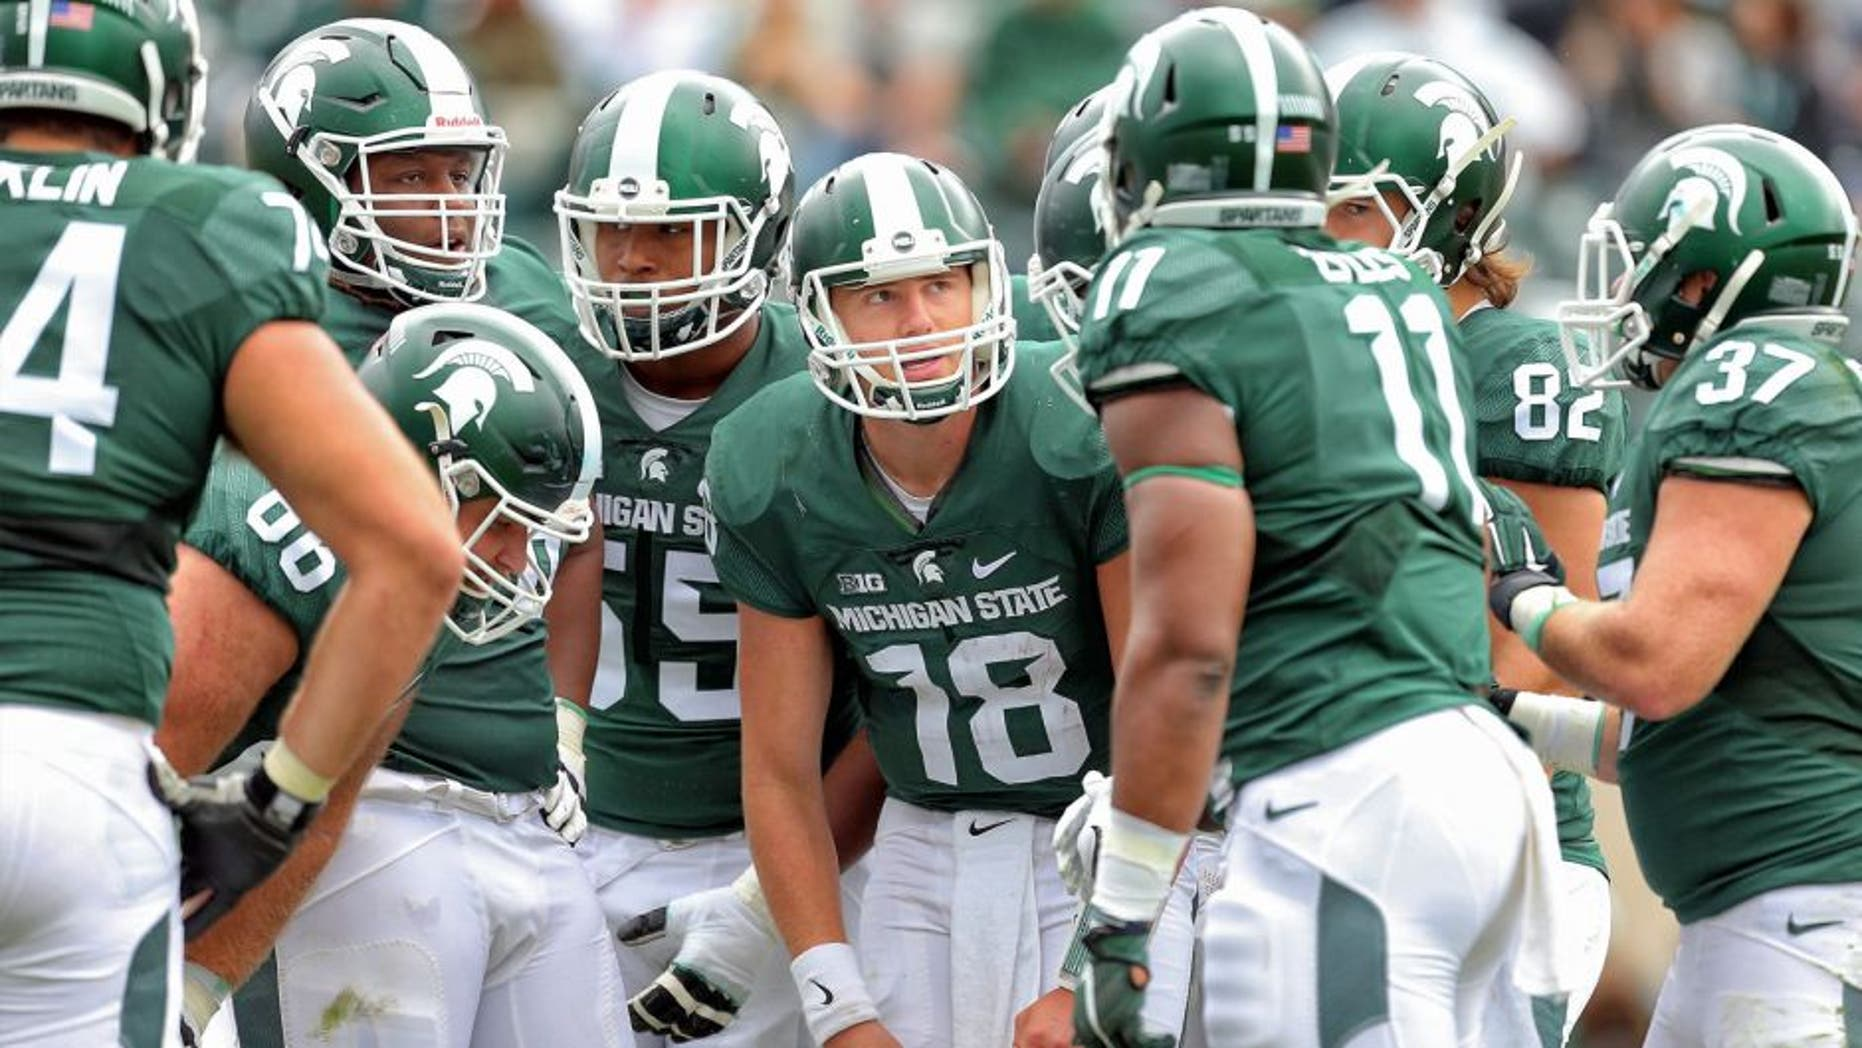 Sep 19, 2015; East Lansing, MI, USA; Michigan State Spartans quarterback Connor Cook (18) call a play in the huddle during the 2nd half of a game at Spartan Stadium. MSU won 35-21. Mandatory Credit: Mike Carter-USA TODAY Sports